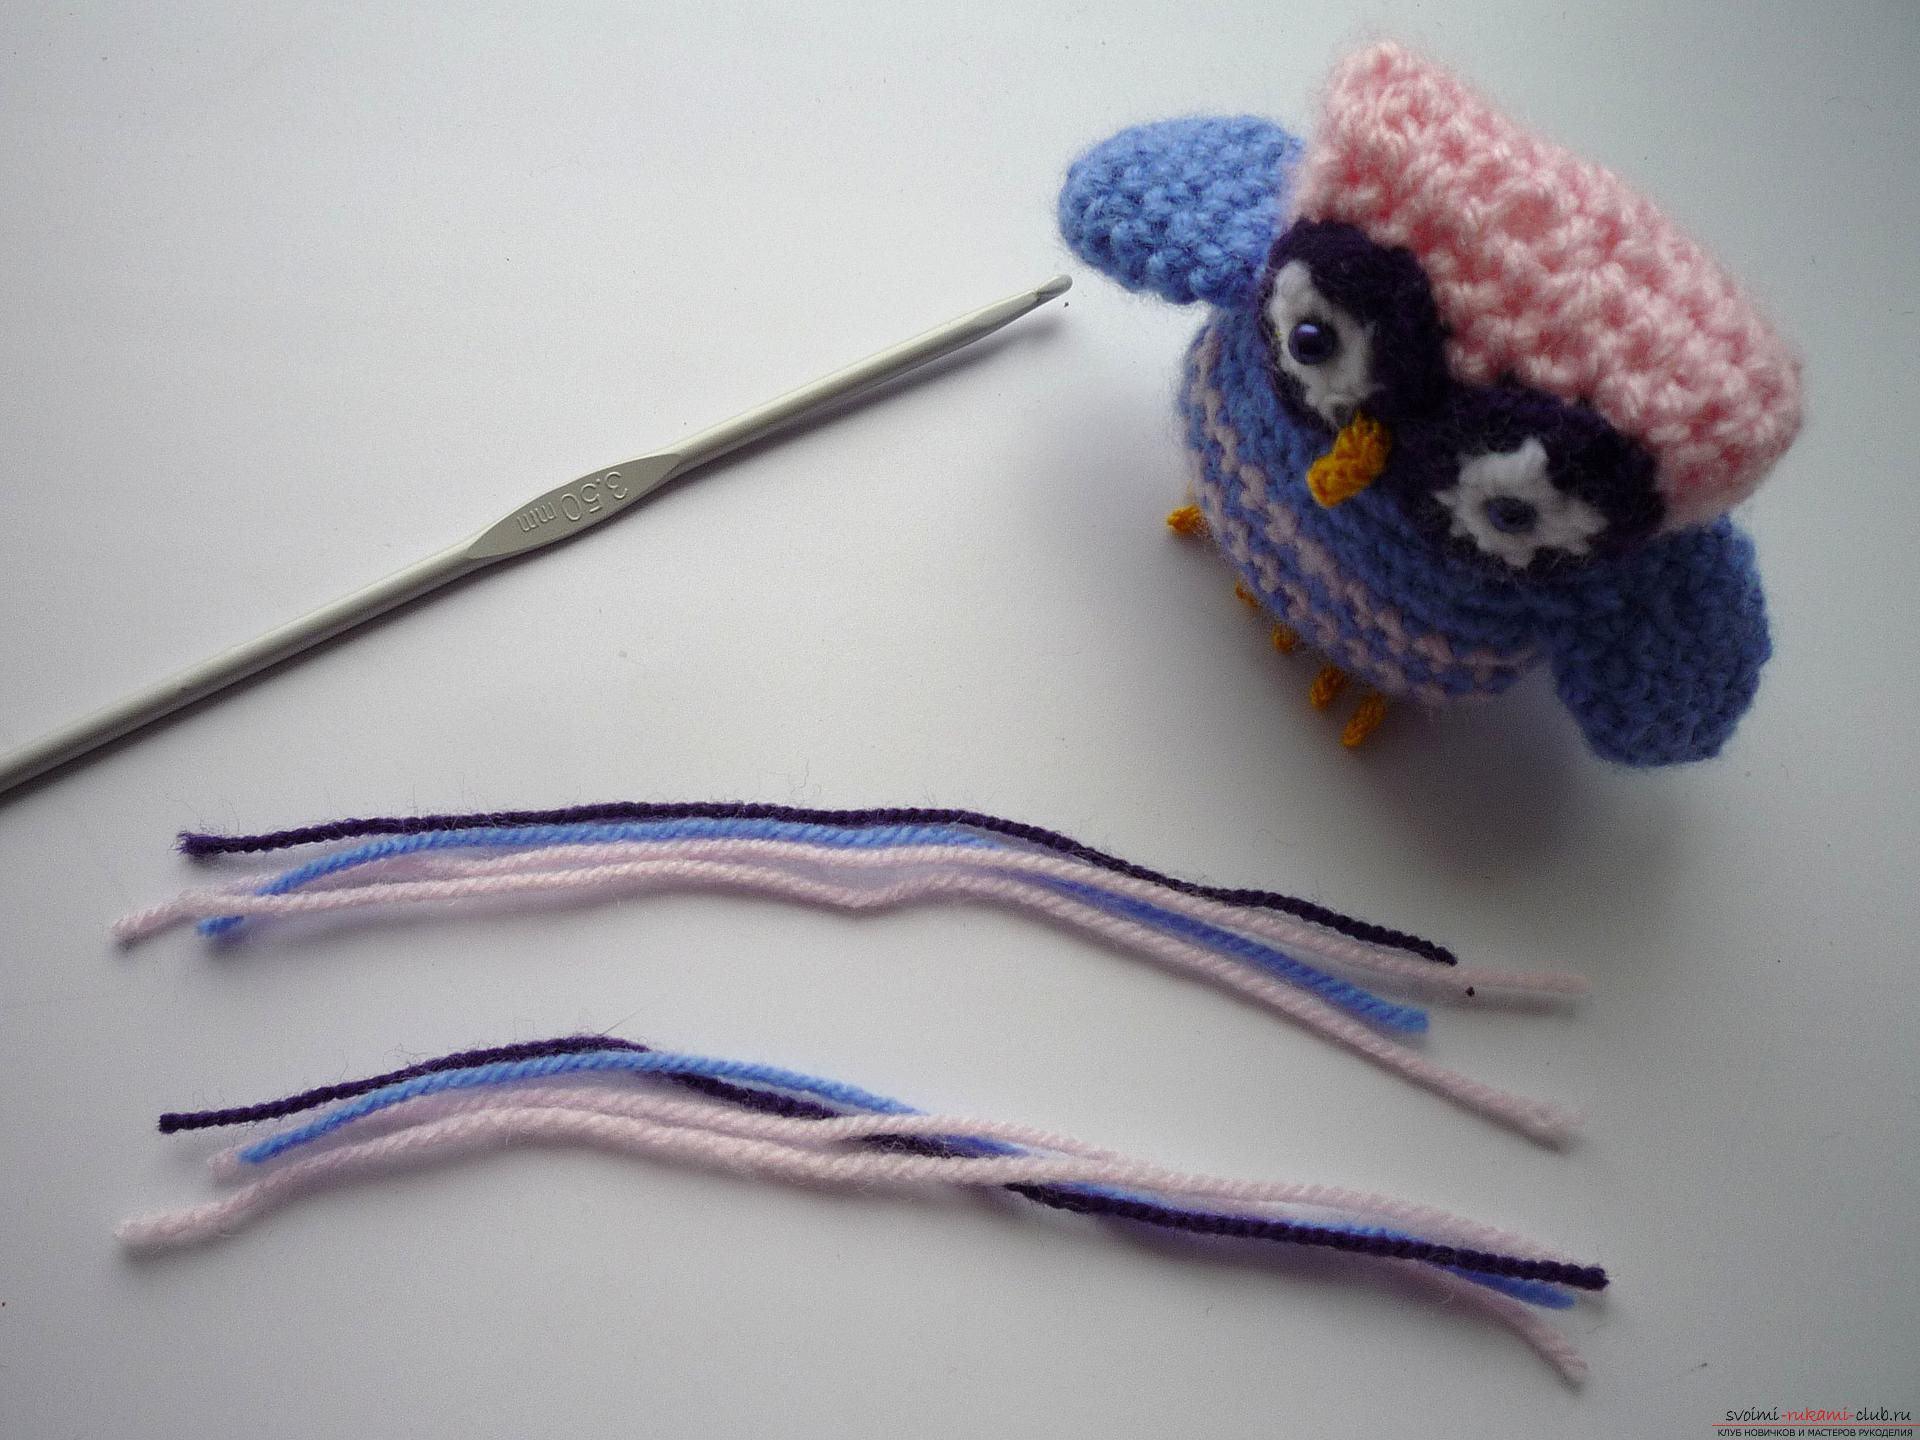 A detailed master-class will teach how to crochet a toy - an amenity in the amigurumi style. Photo number 16